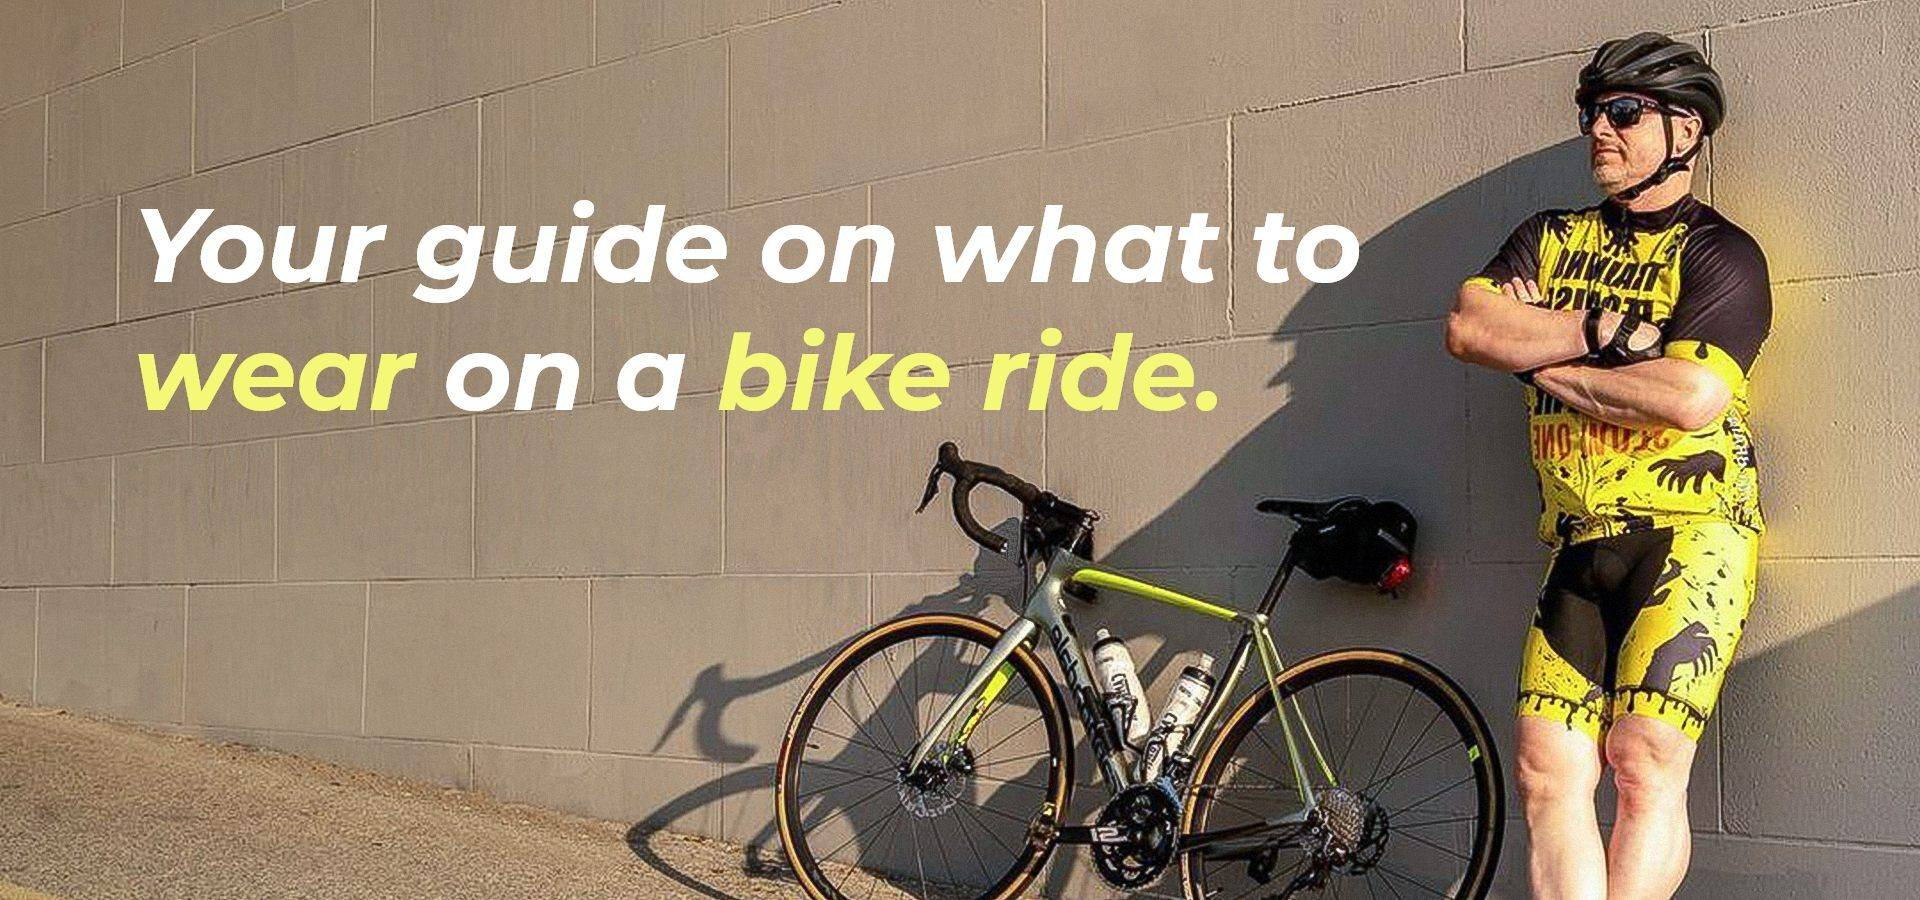 bicyclebooth cycling guide bike apparels